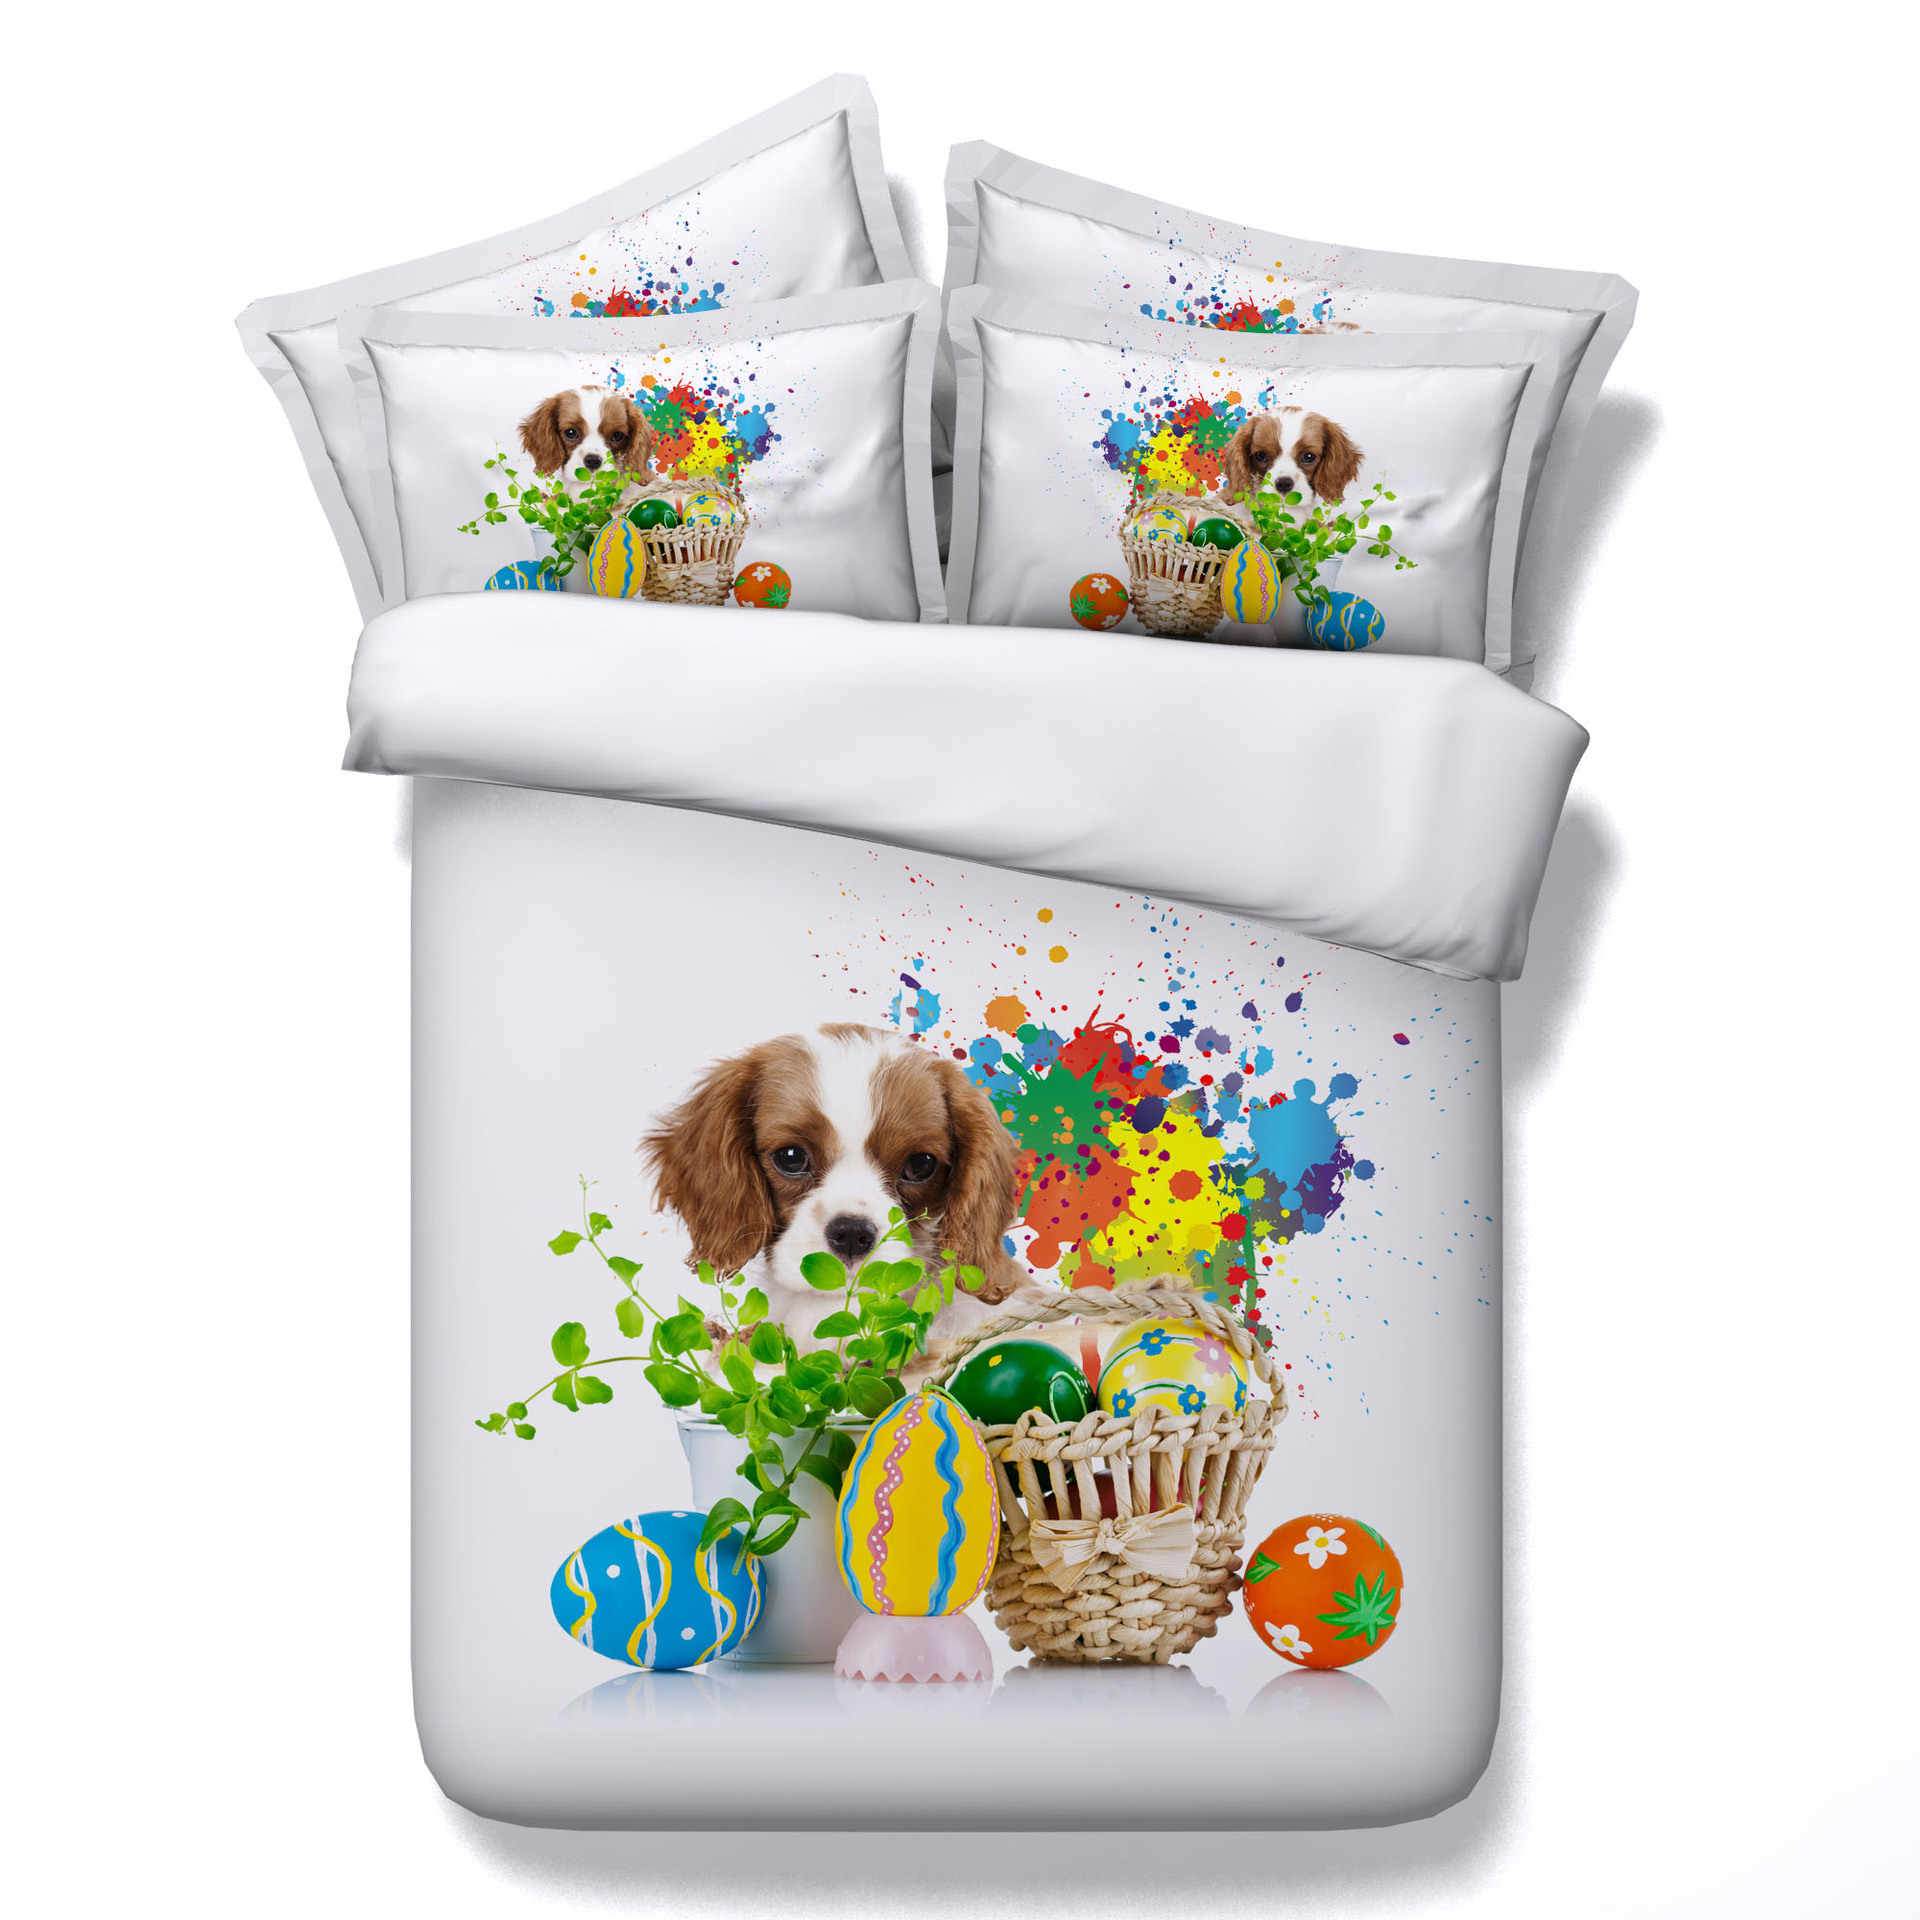 3D Trendy Puppy comforter Bedding Sets Watercolor Bed Set Queen Sweet Valentine's Day Gift Duvet Cover king size for Dog Love